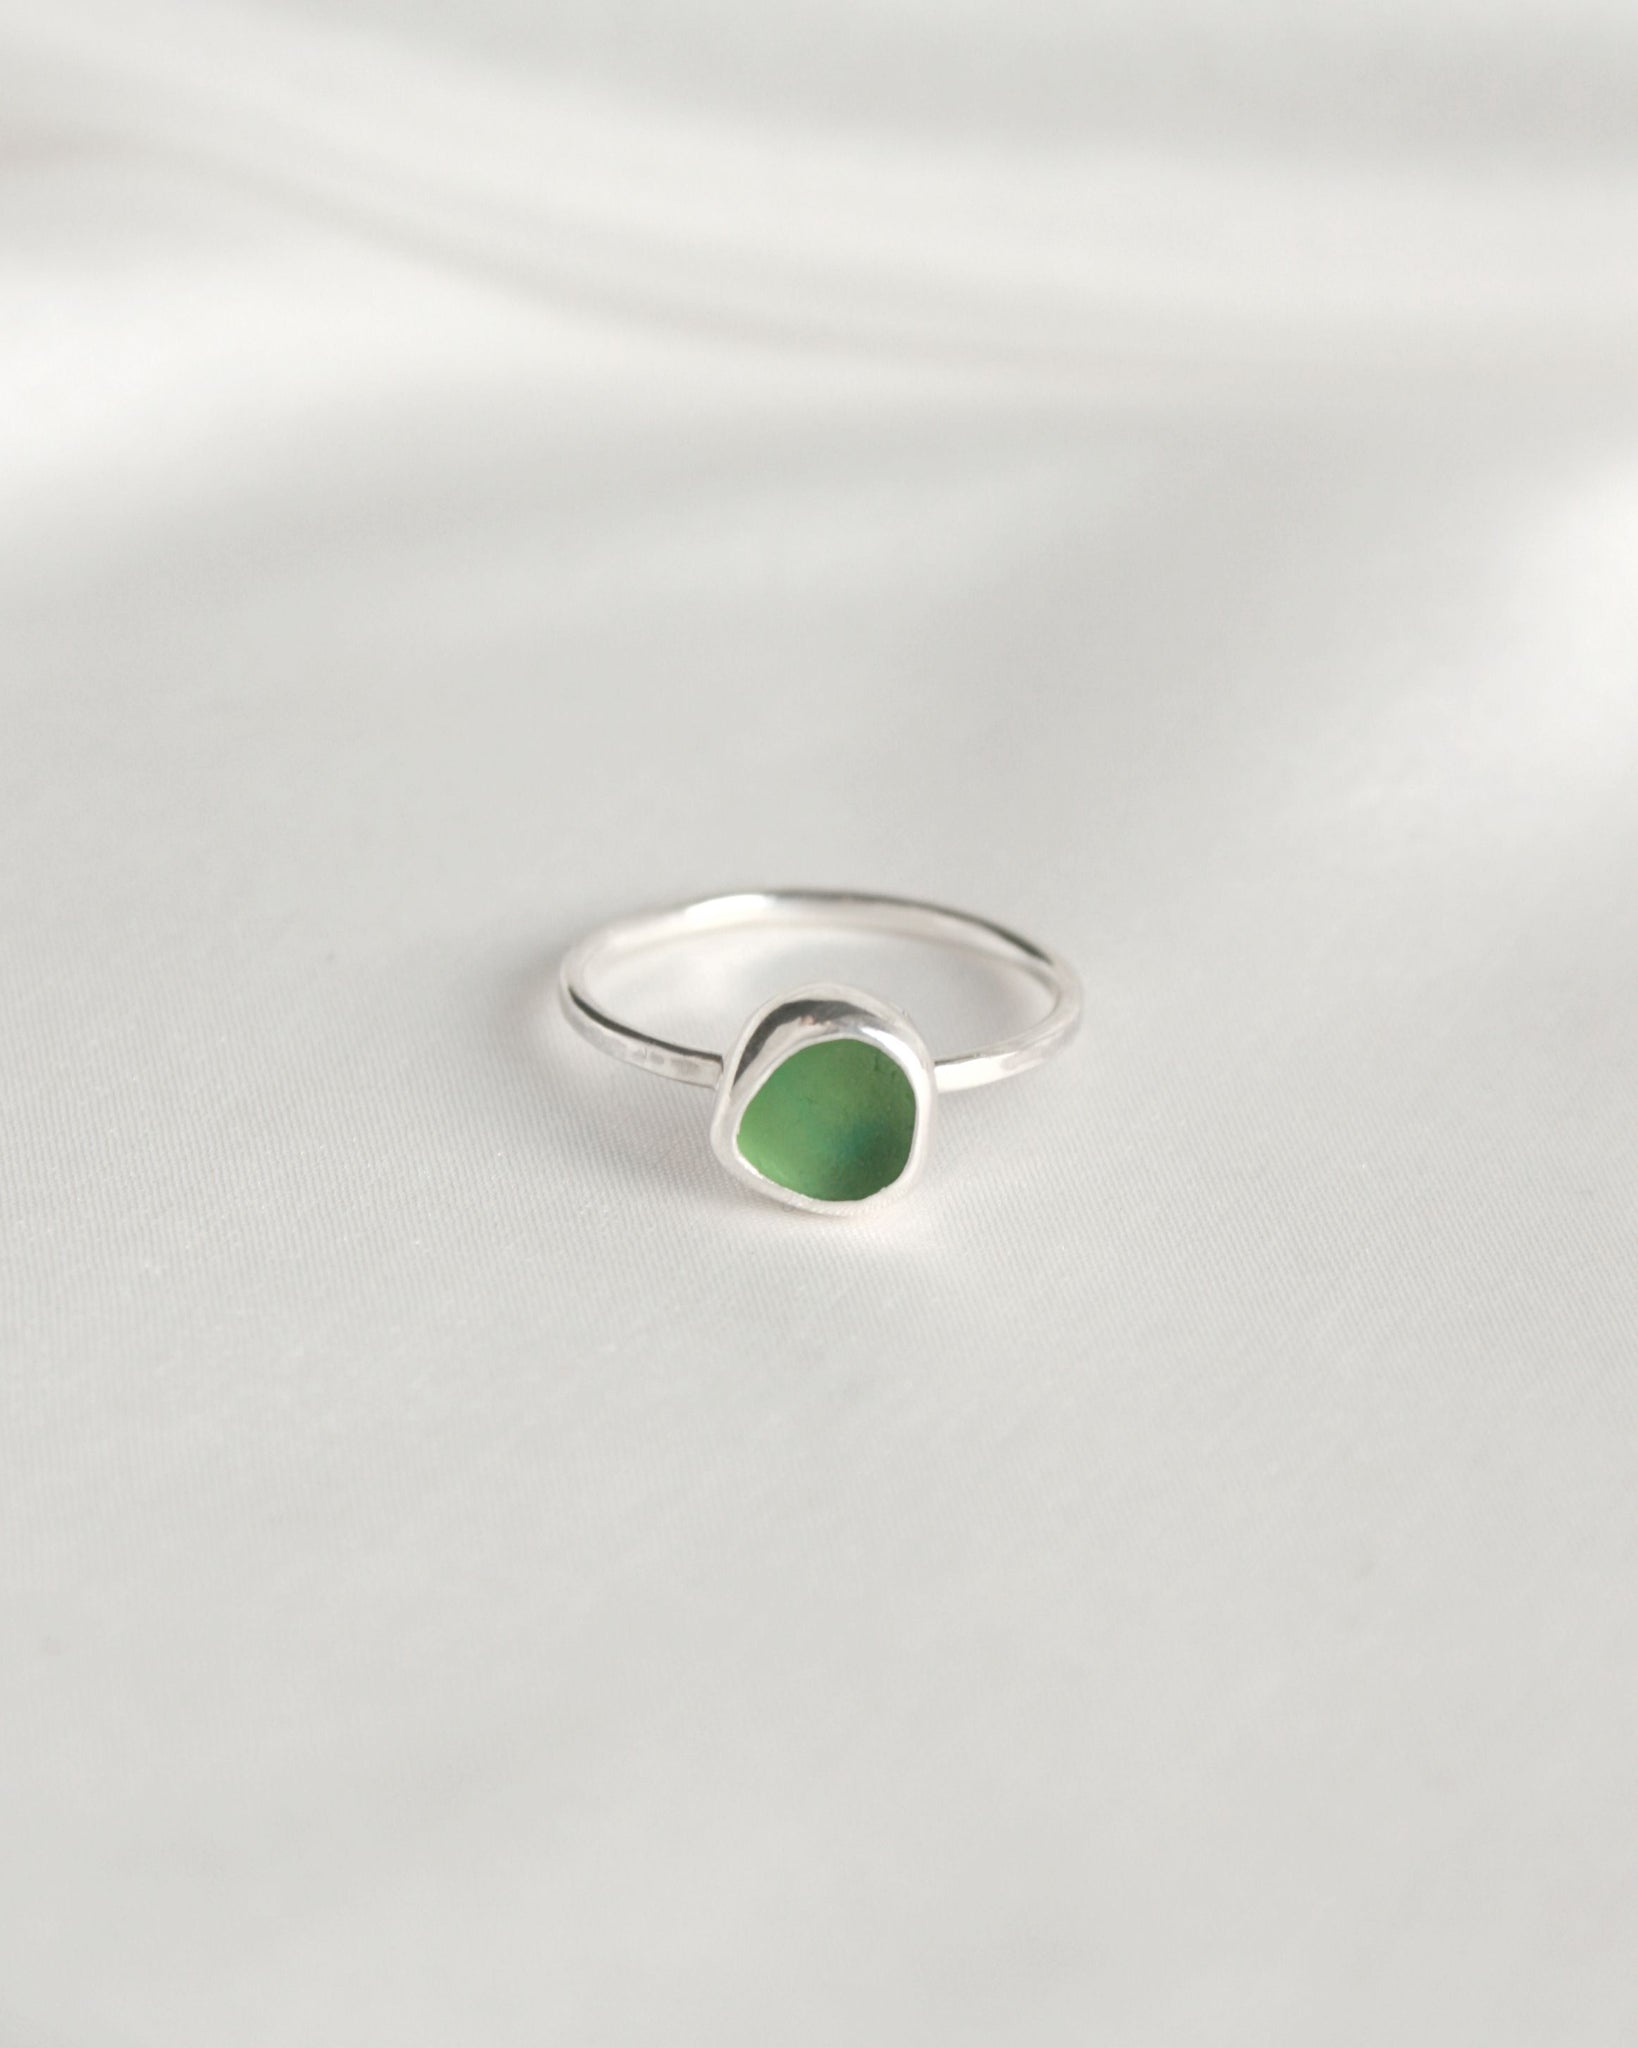 Green sea glass ring - Size J